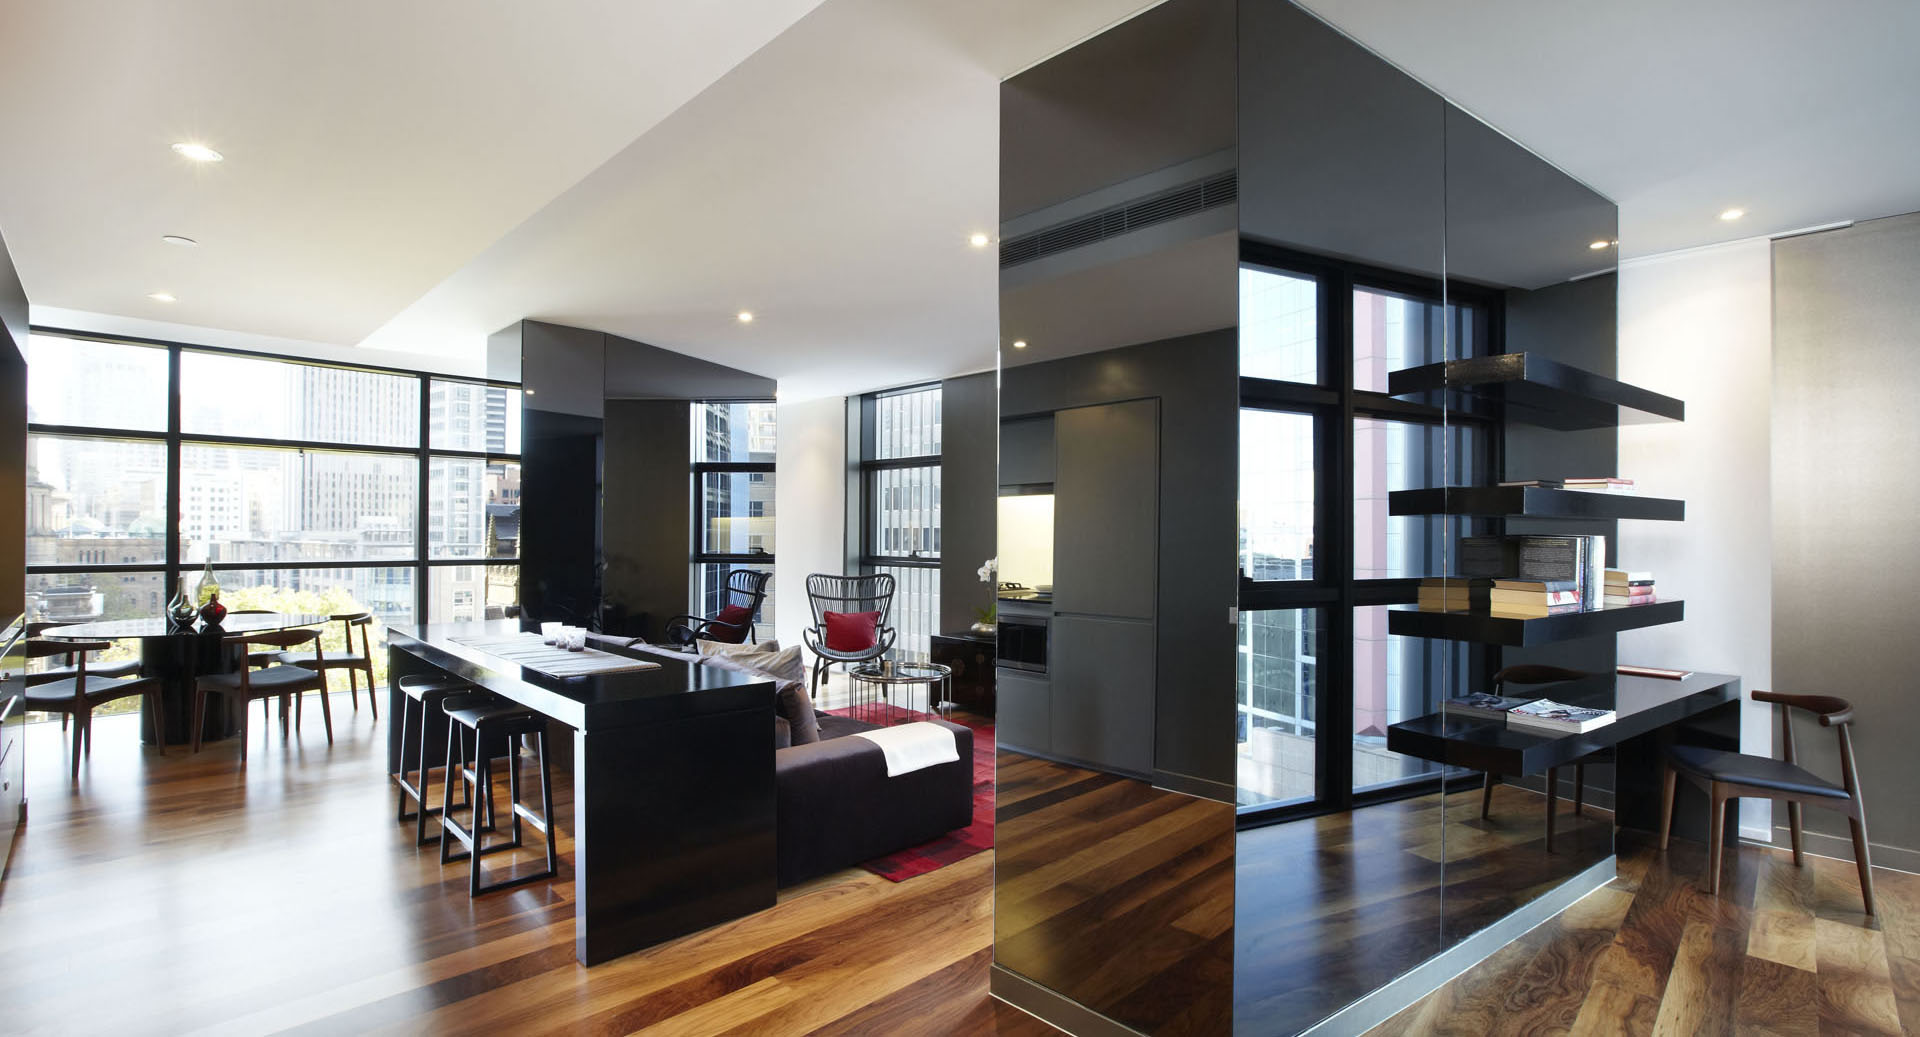 Contemporary apartment designs in sydney idesignarch for Apartment design sydney